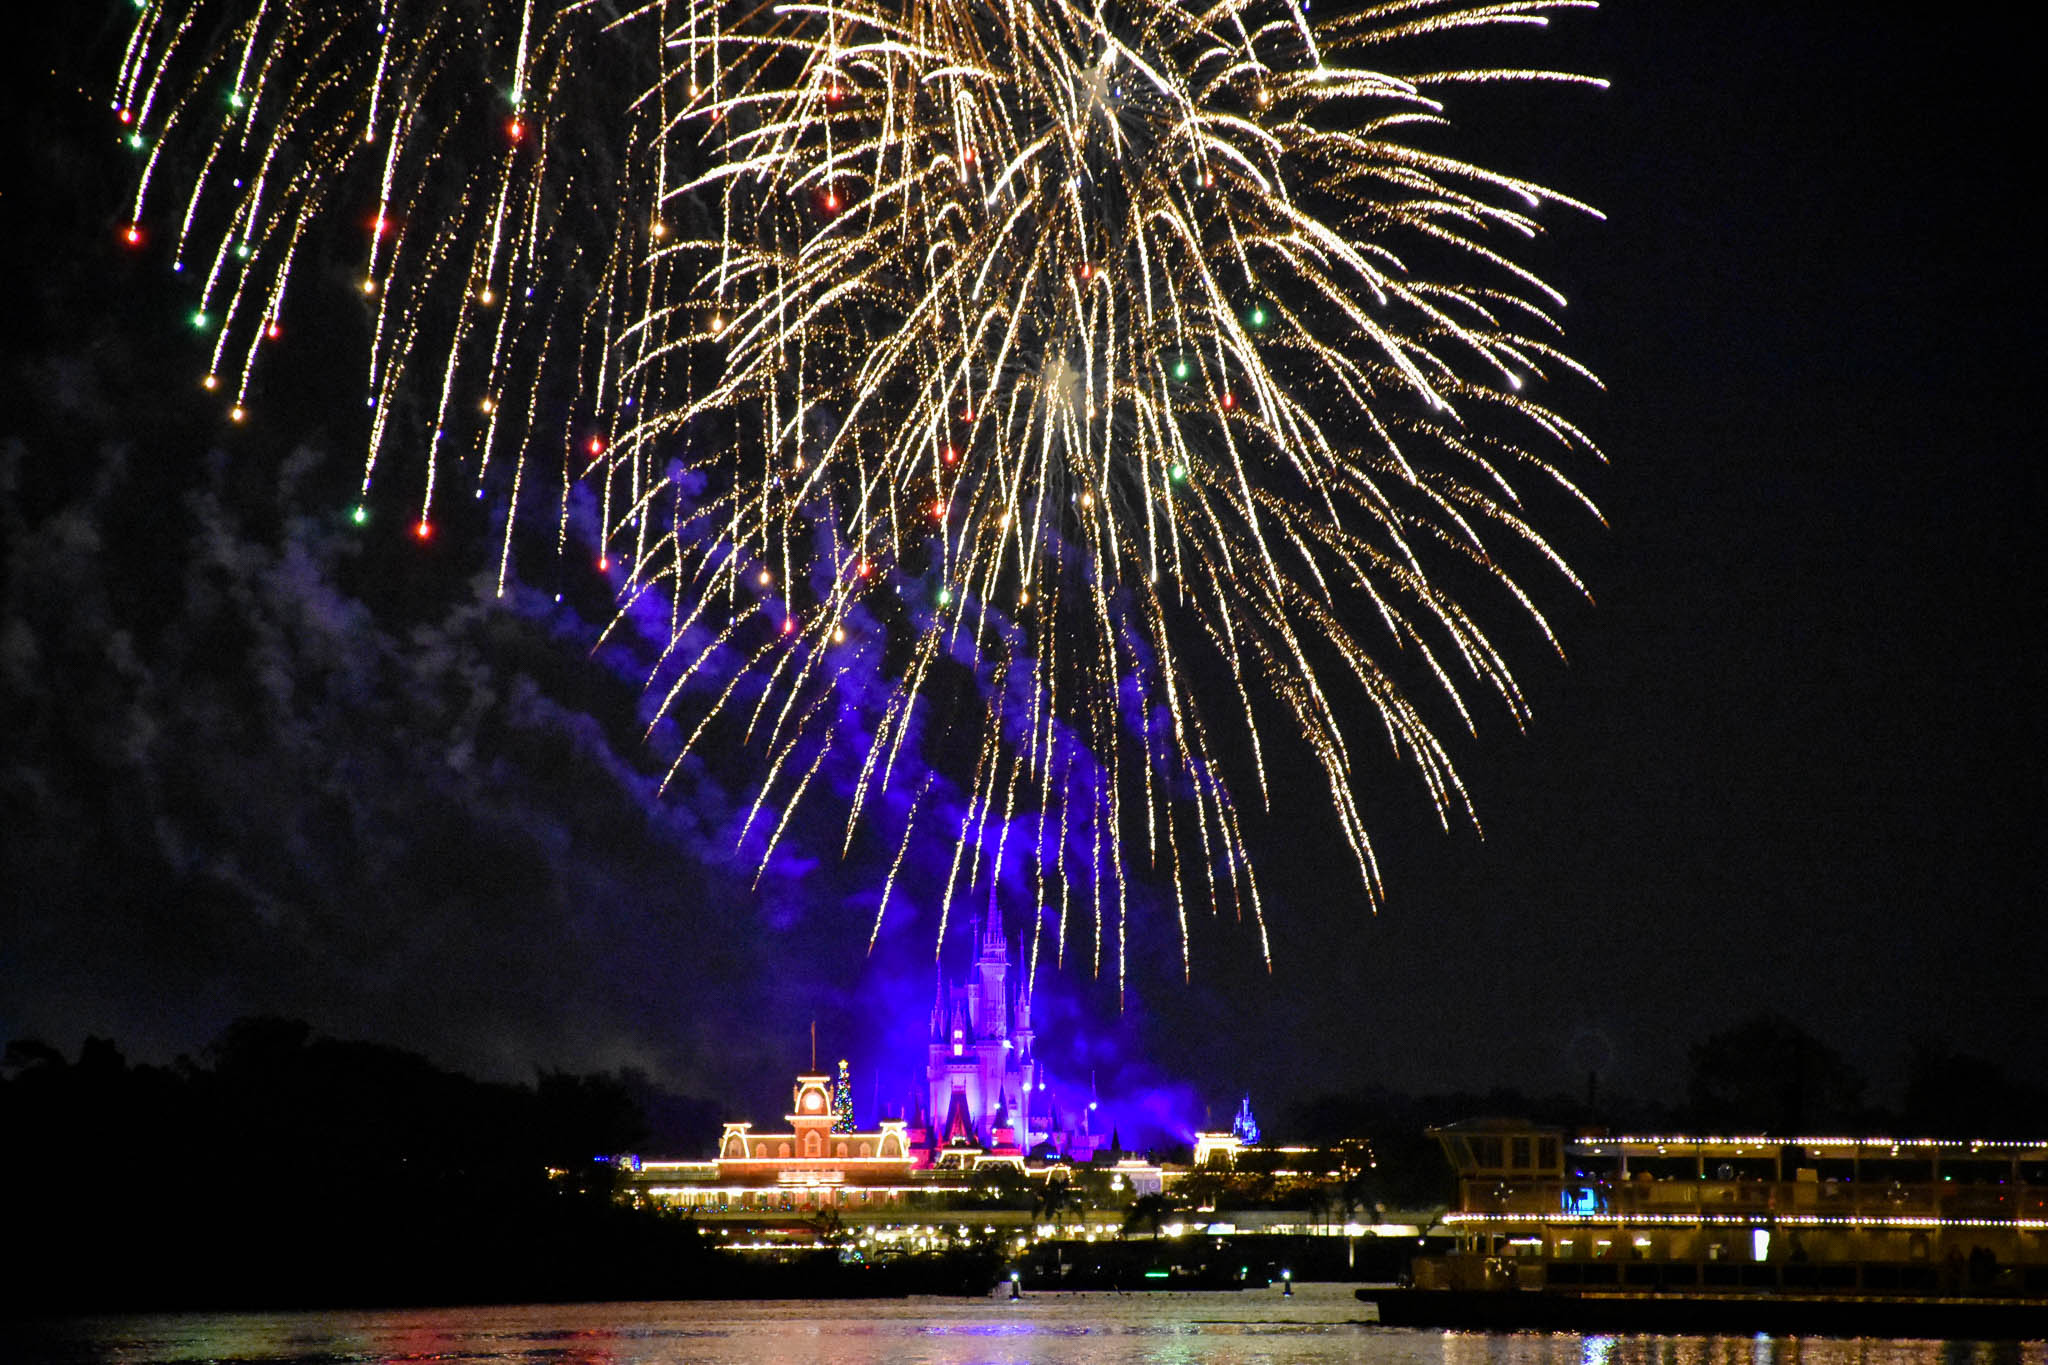 Best Places To Watch The Magic Kingdom Fireworks